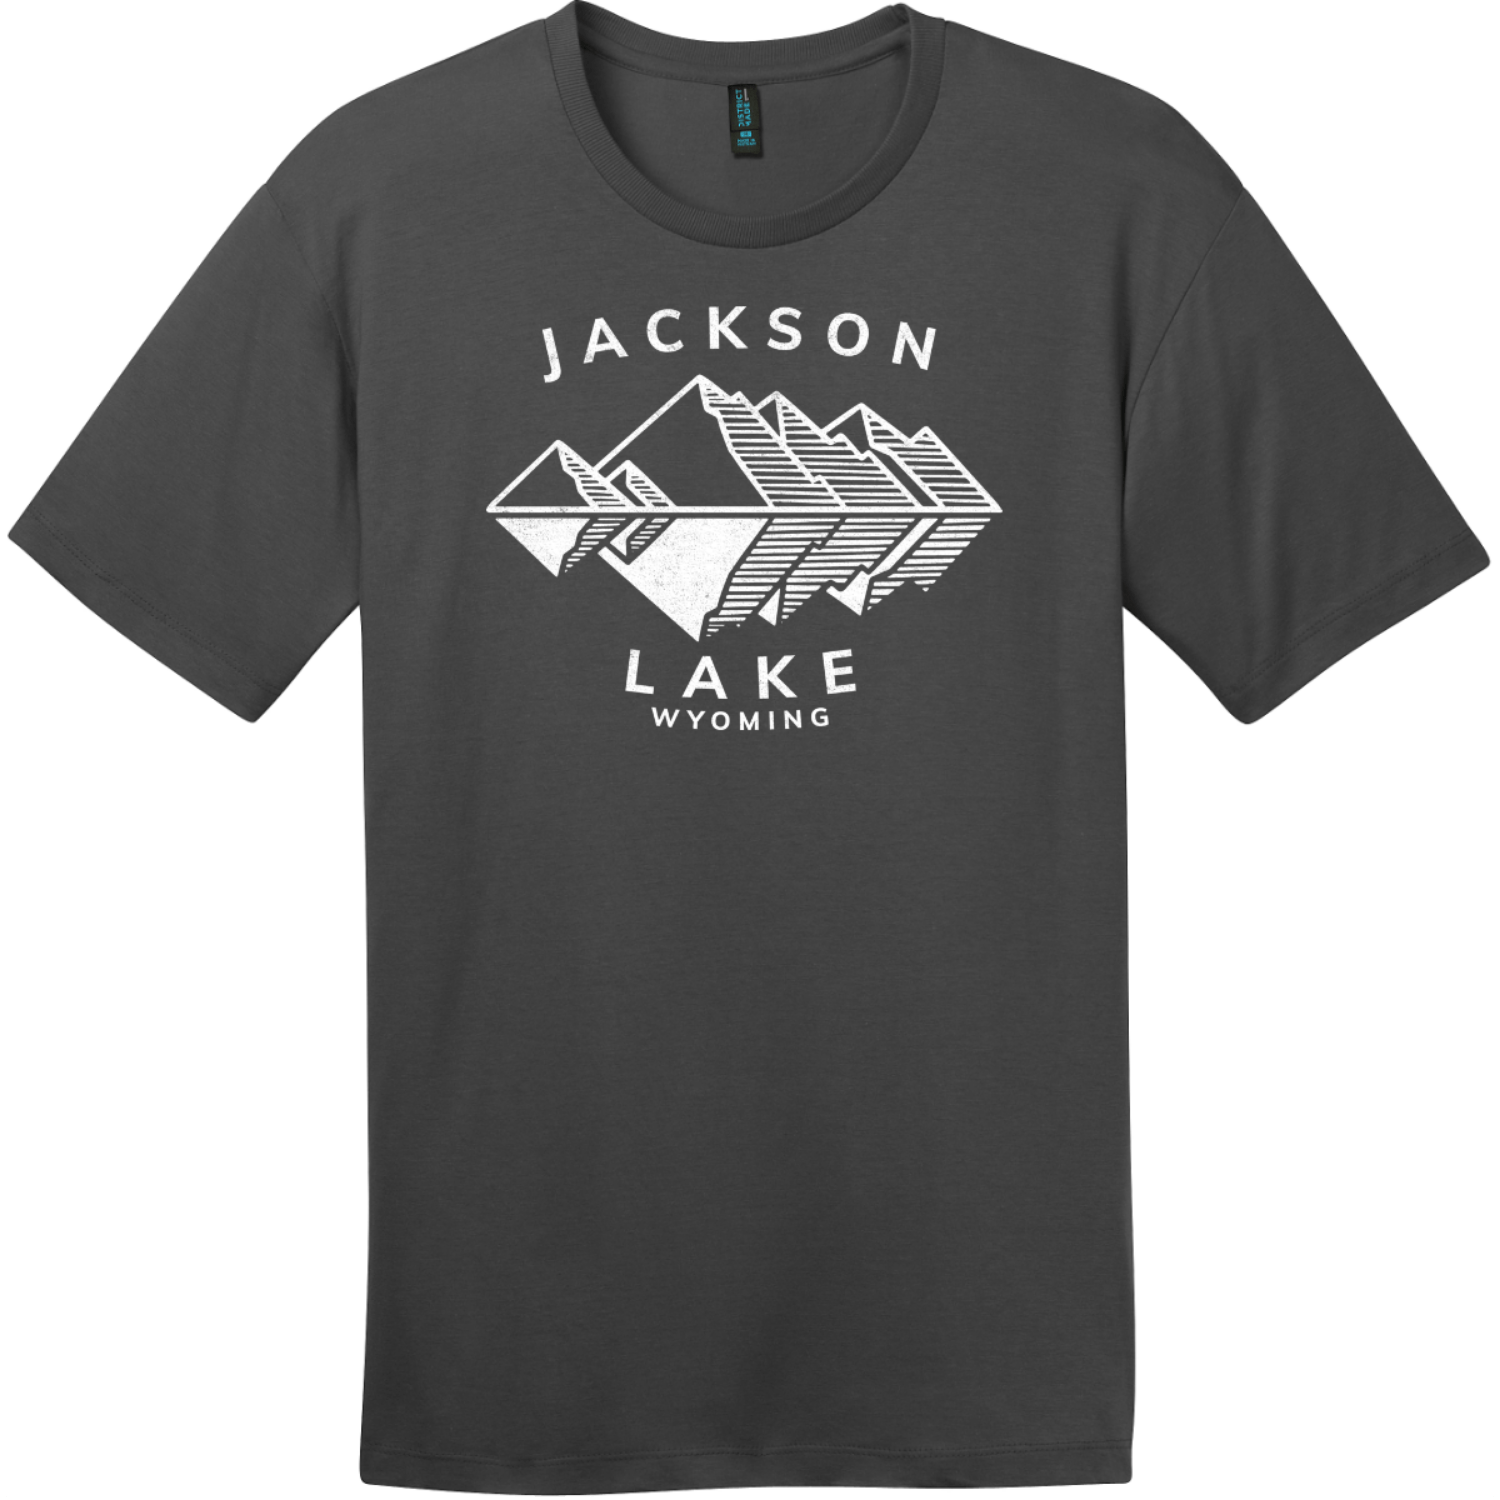 Jackson Lake Wyoming Mountains T-Shirt Charcoal District Perfect Weight Tee DT104